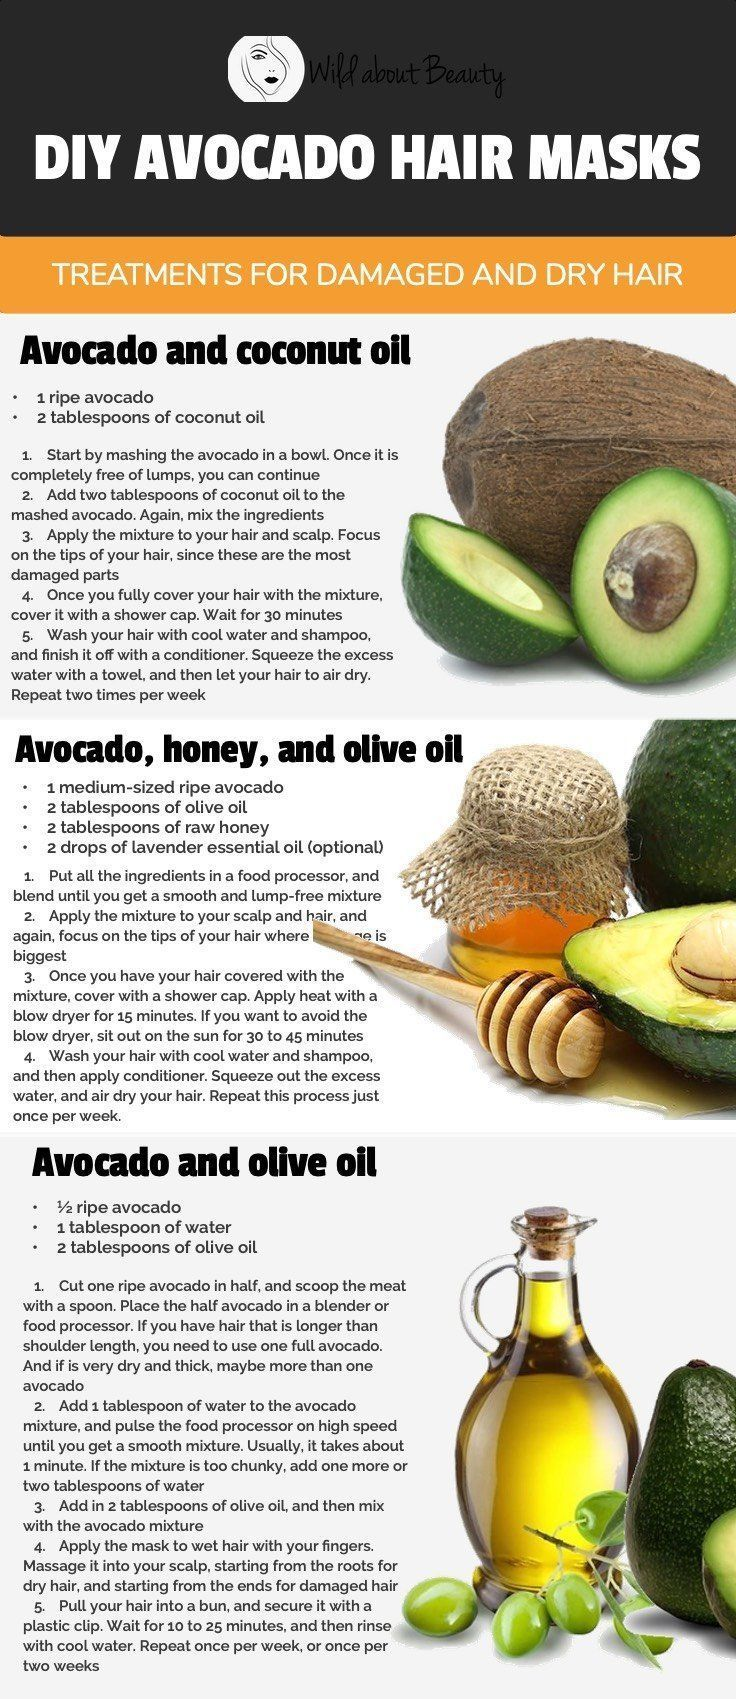 7 DIY Avocado Hair Mask Treatments for Damaged and Dry